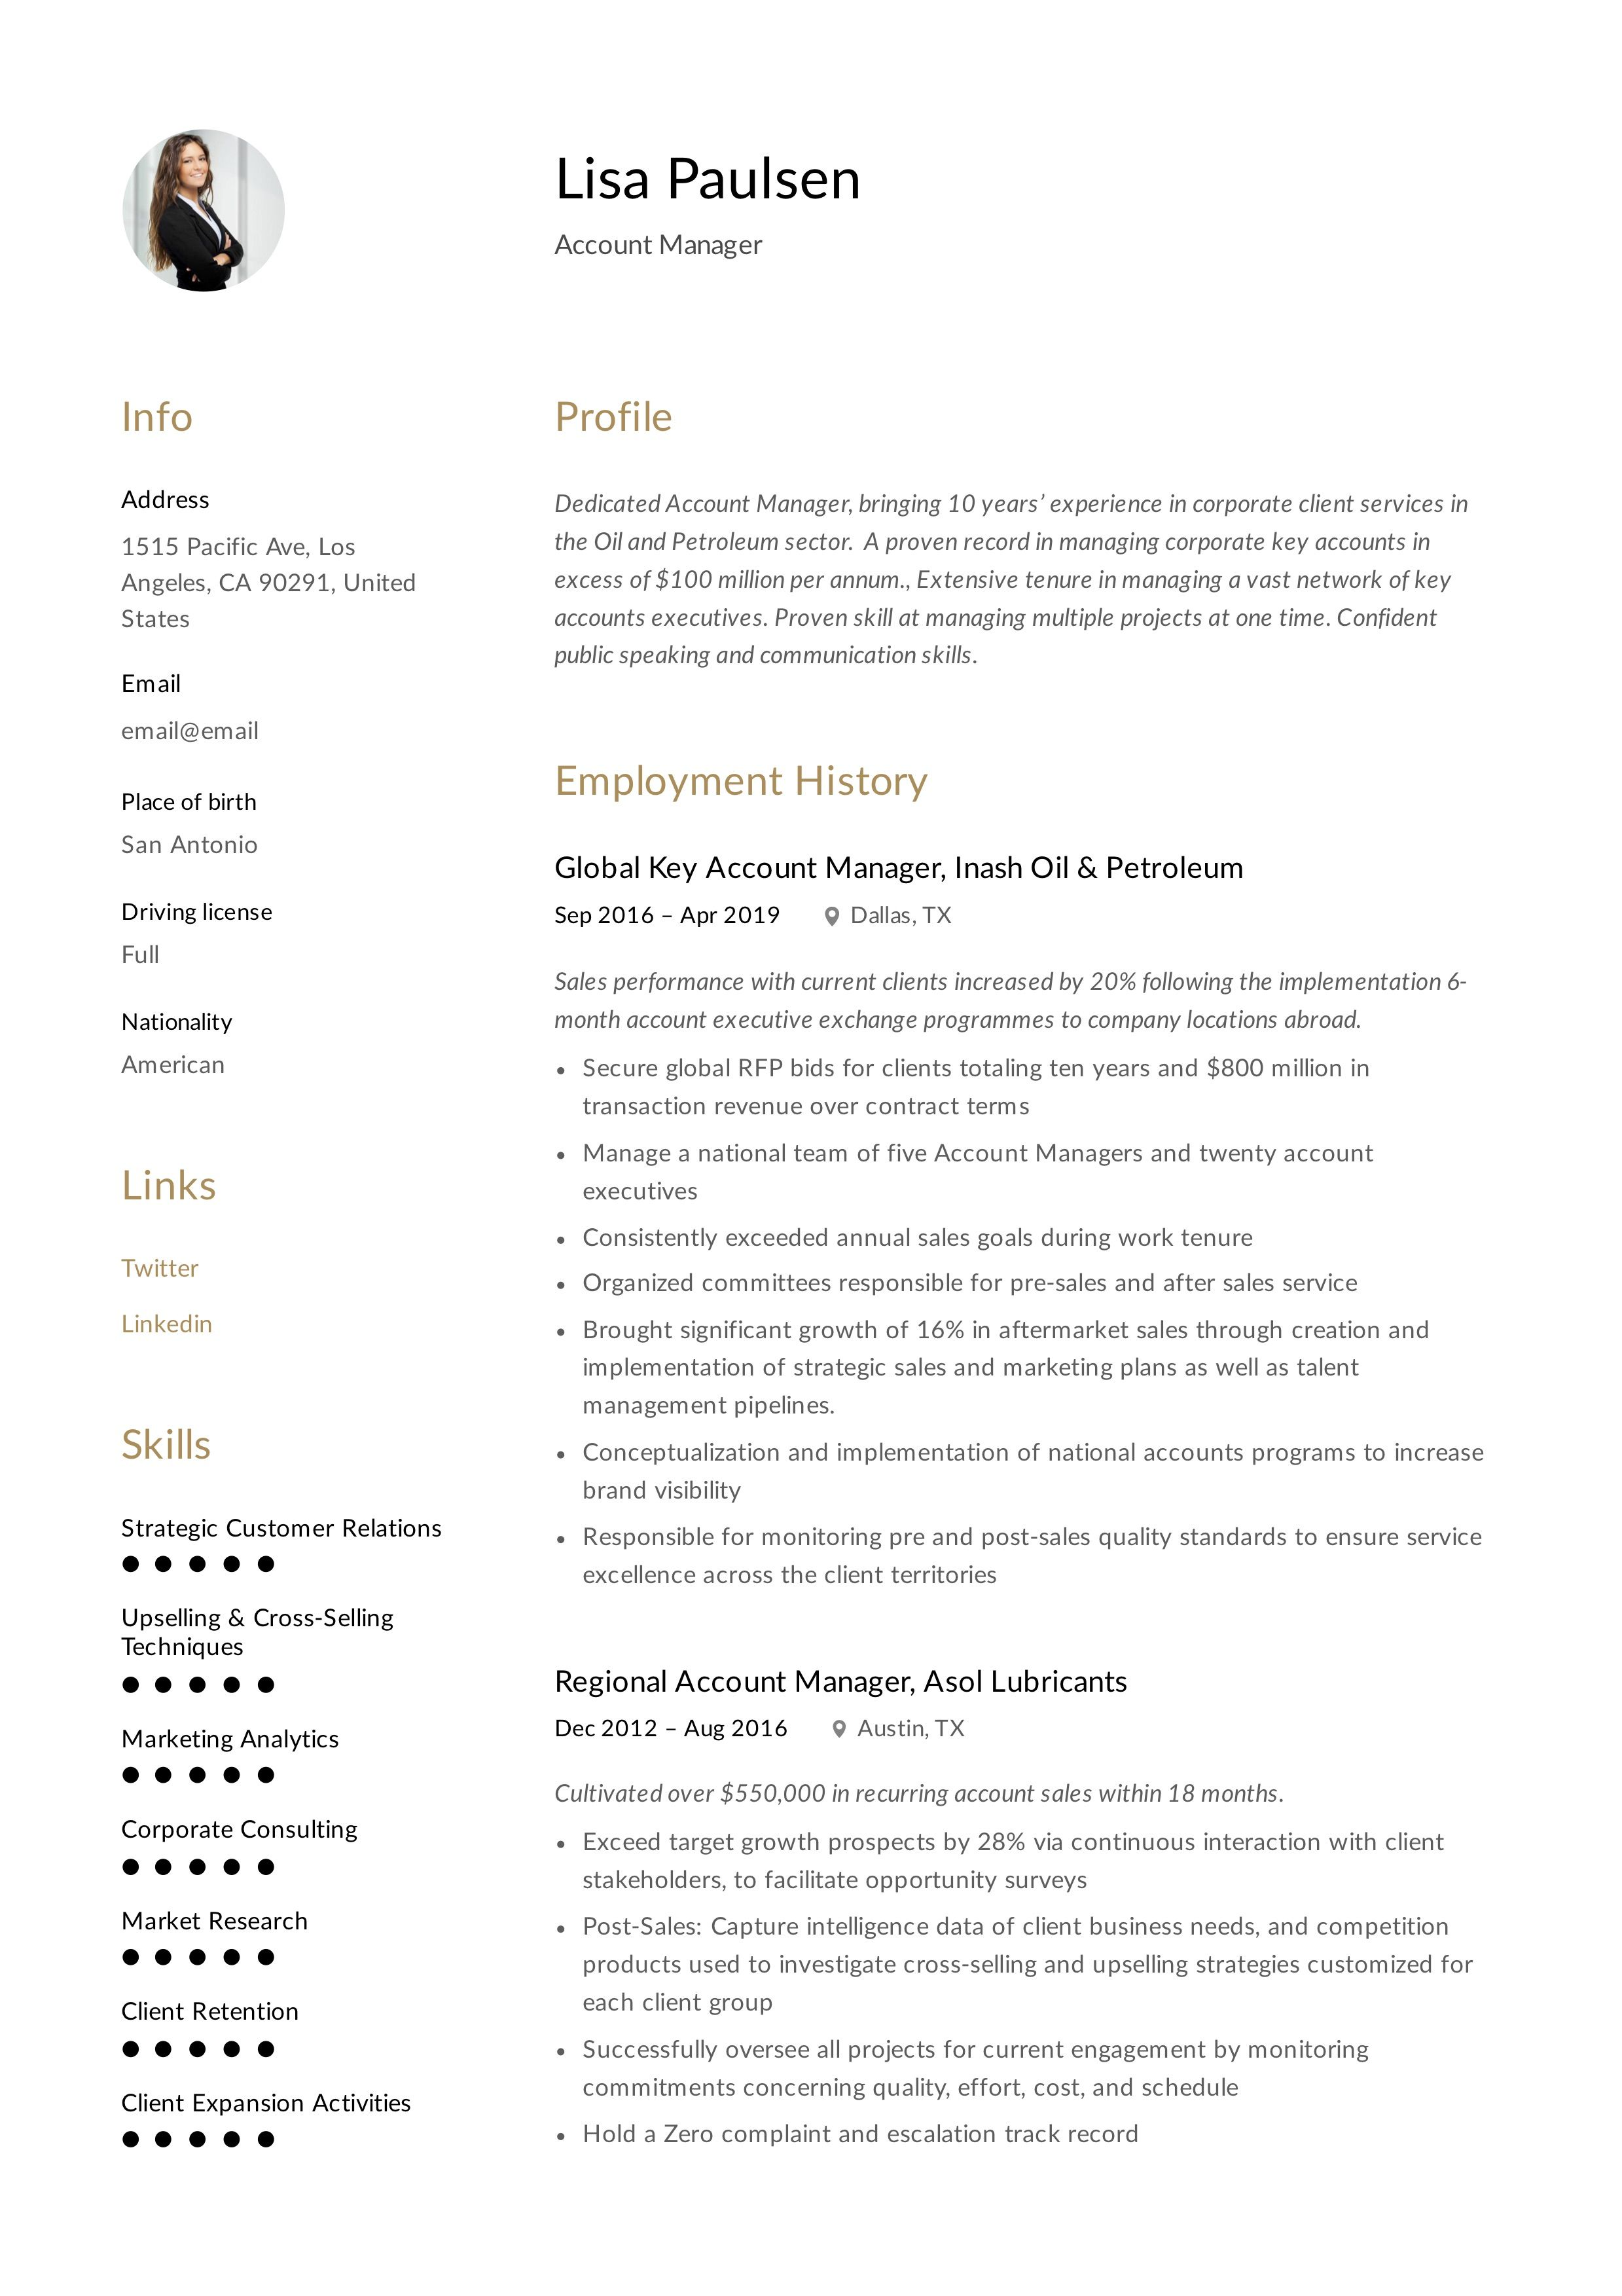 Account Manager Resume Writing Guide In 2020 Resume Guide Manager Resume Resume